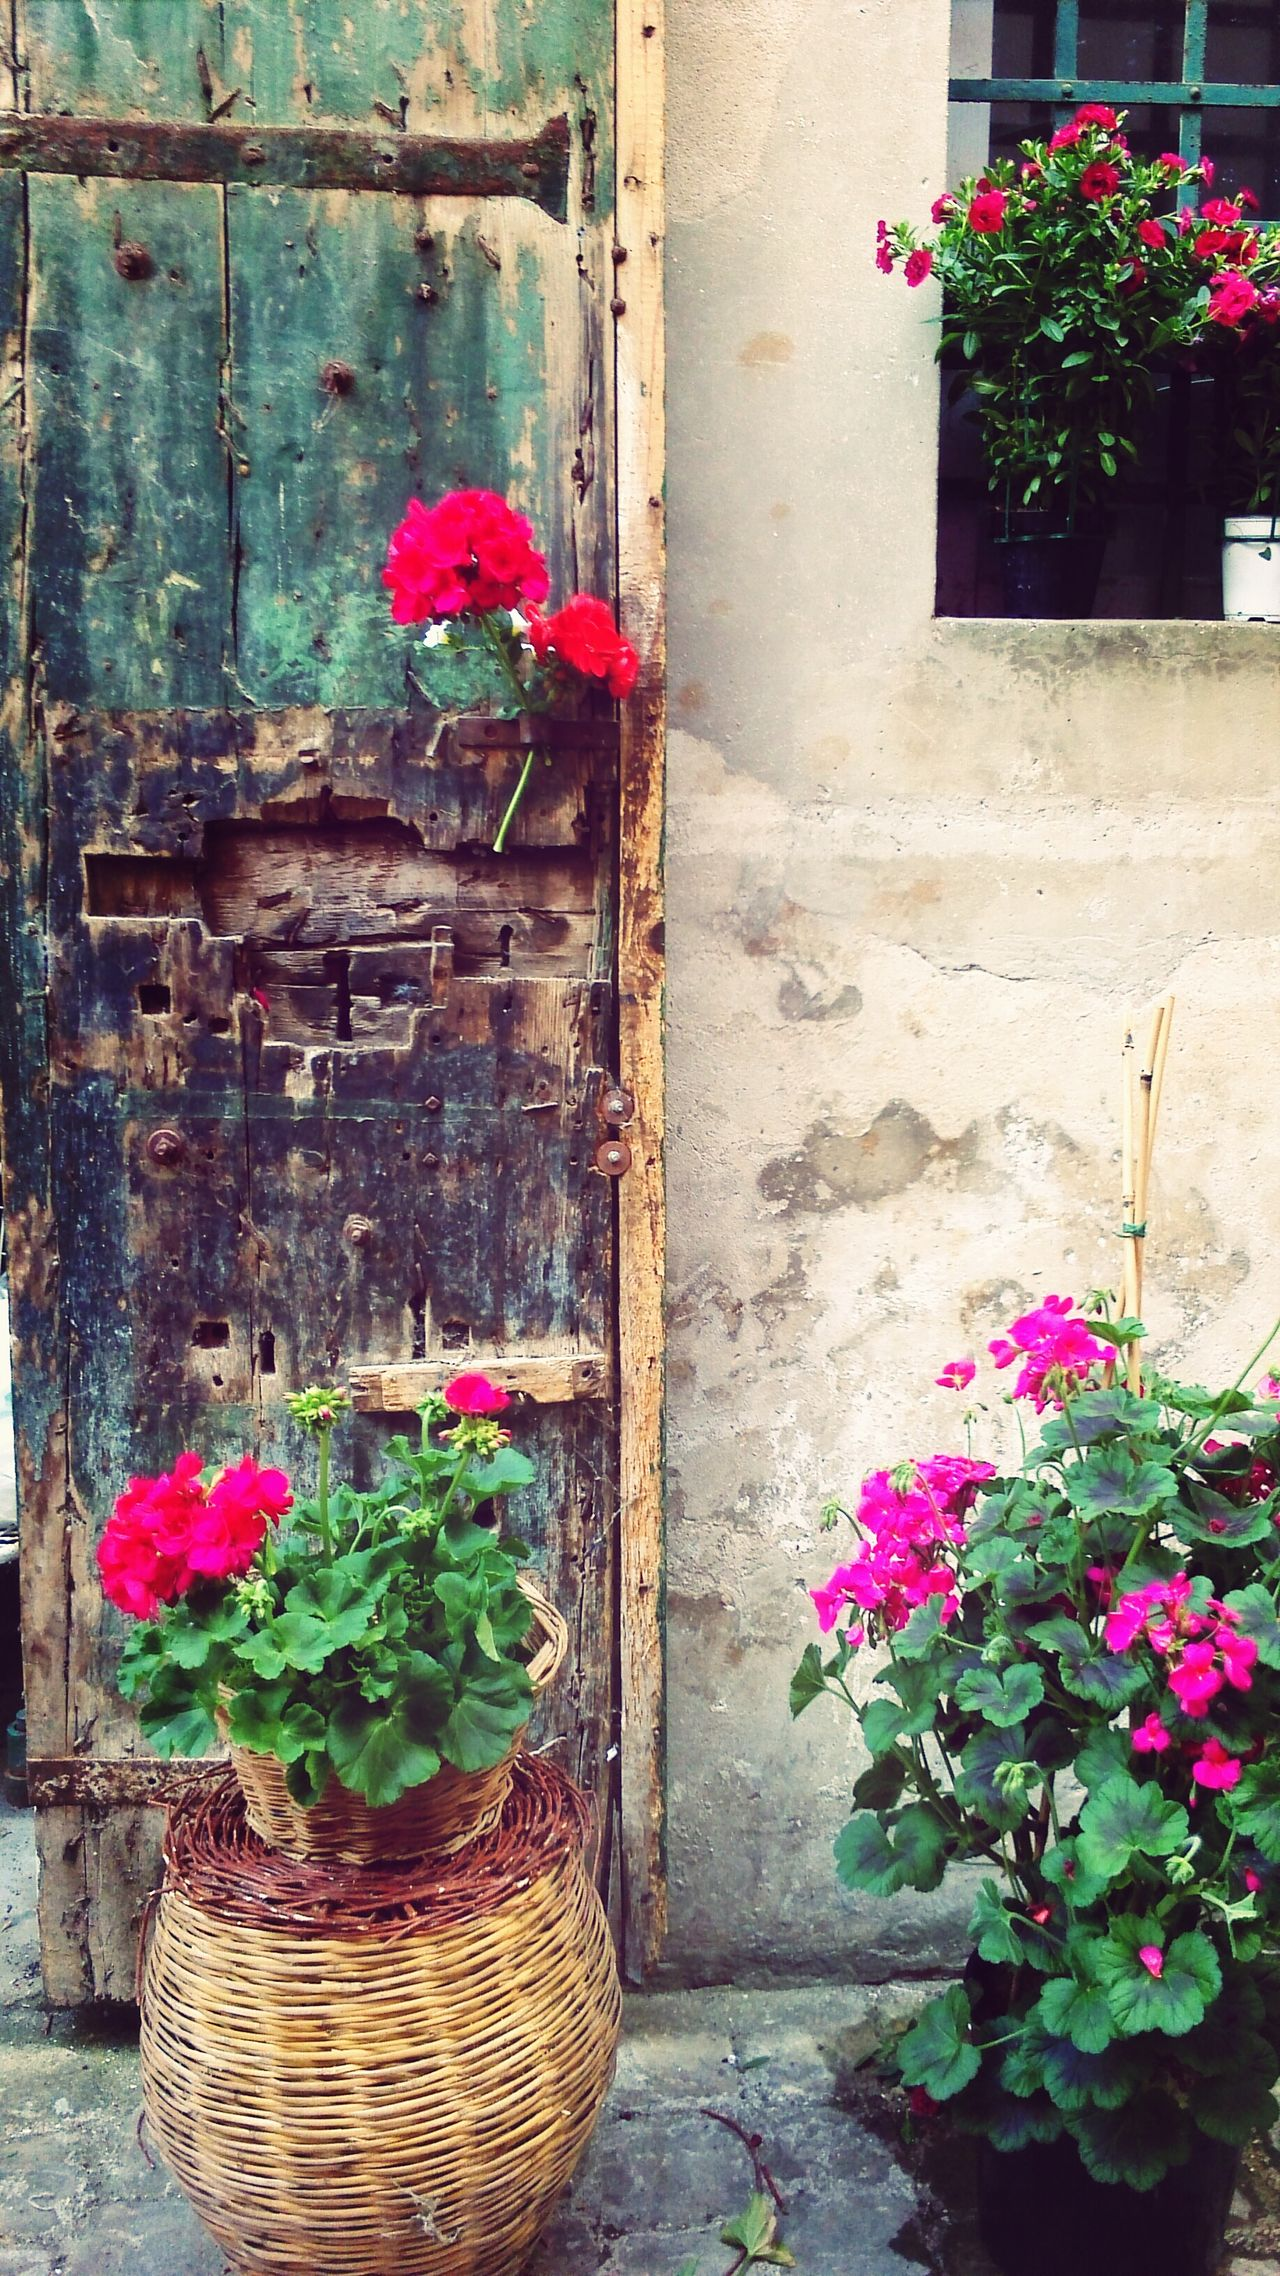 Enjoying Life Colorful Postcards From Italy Flowers